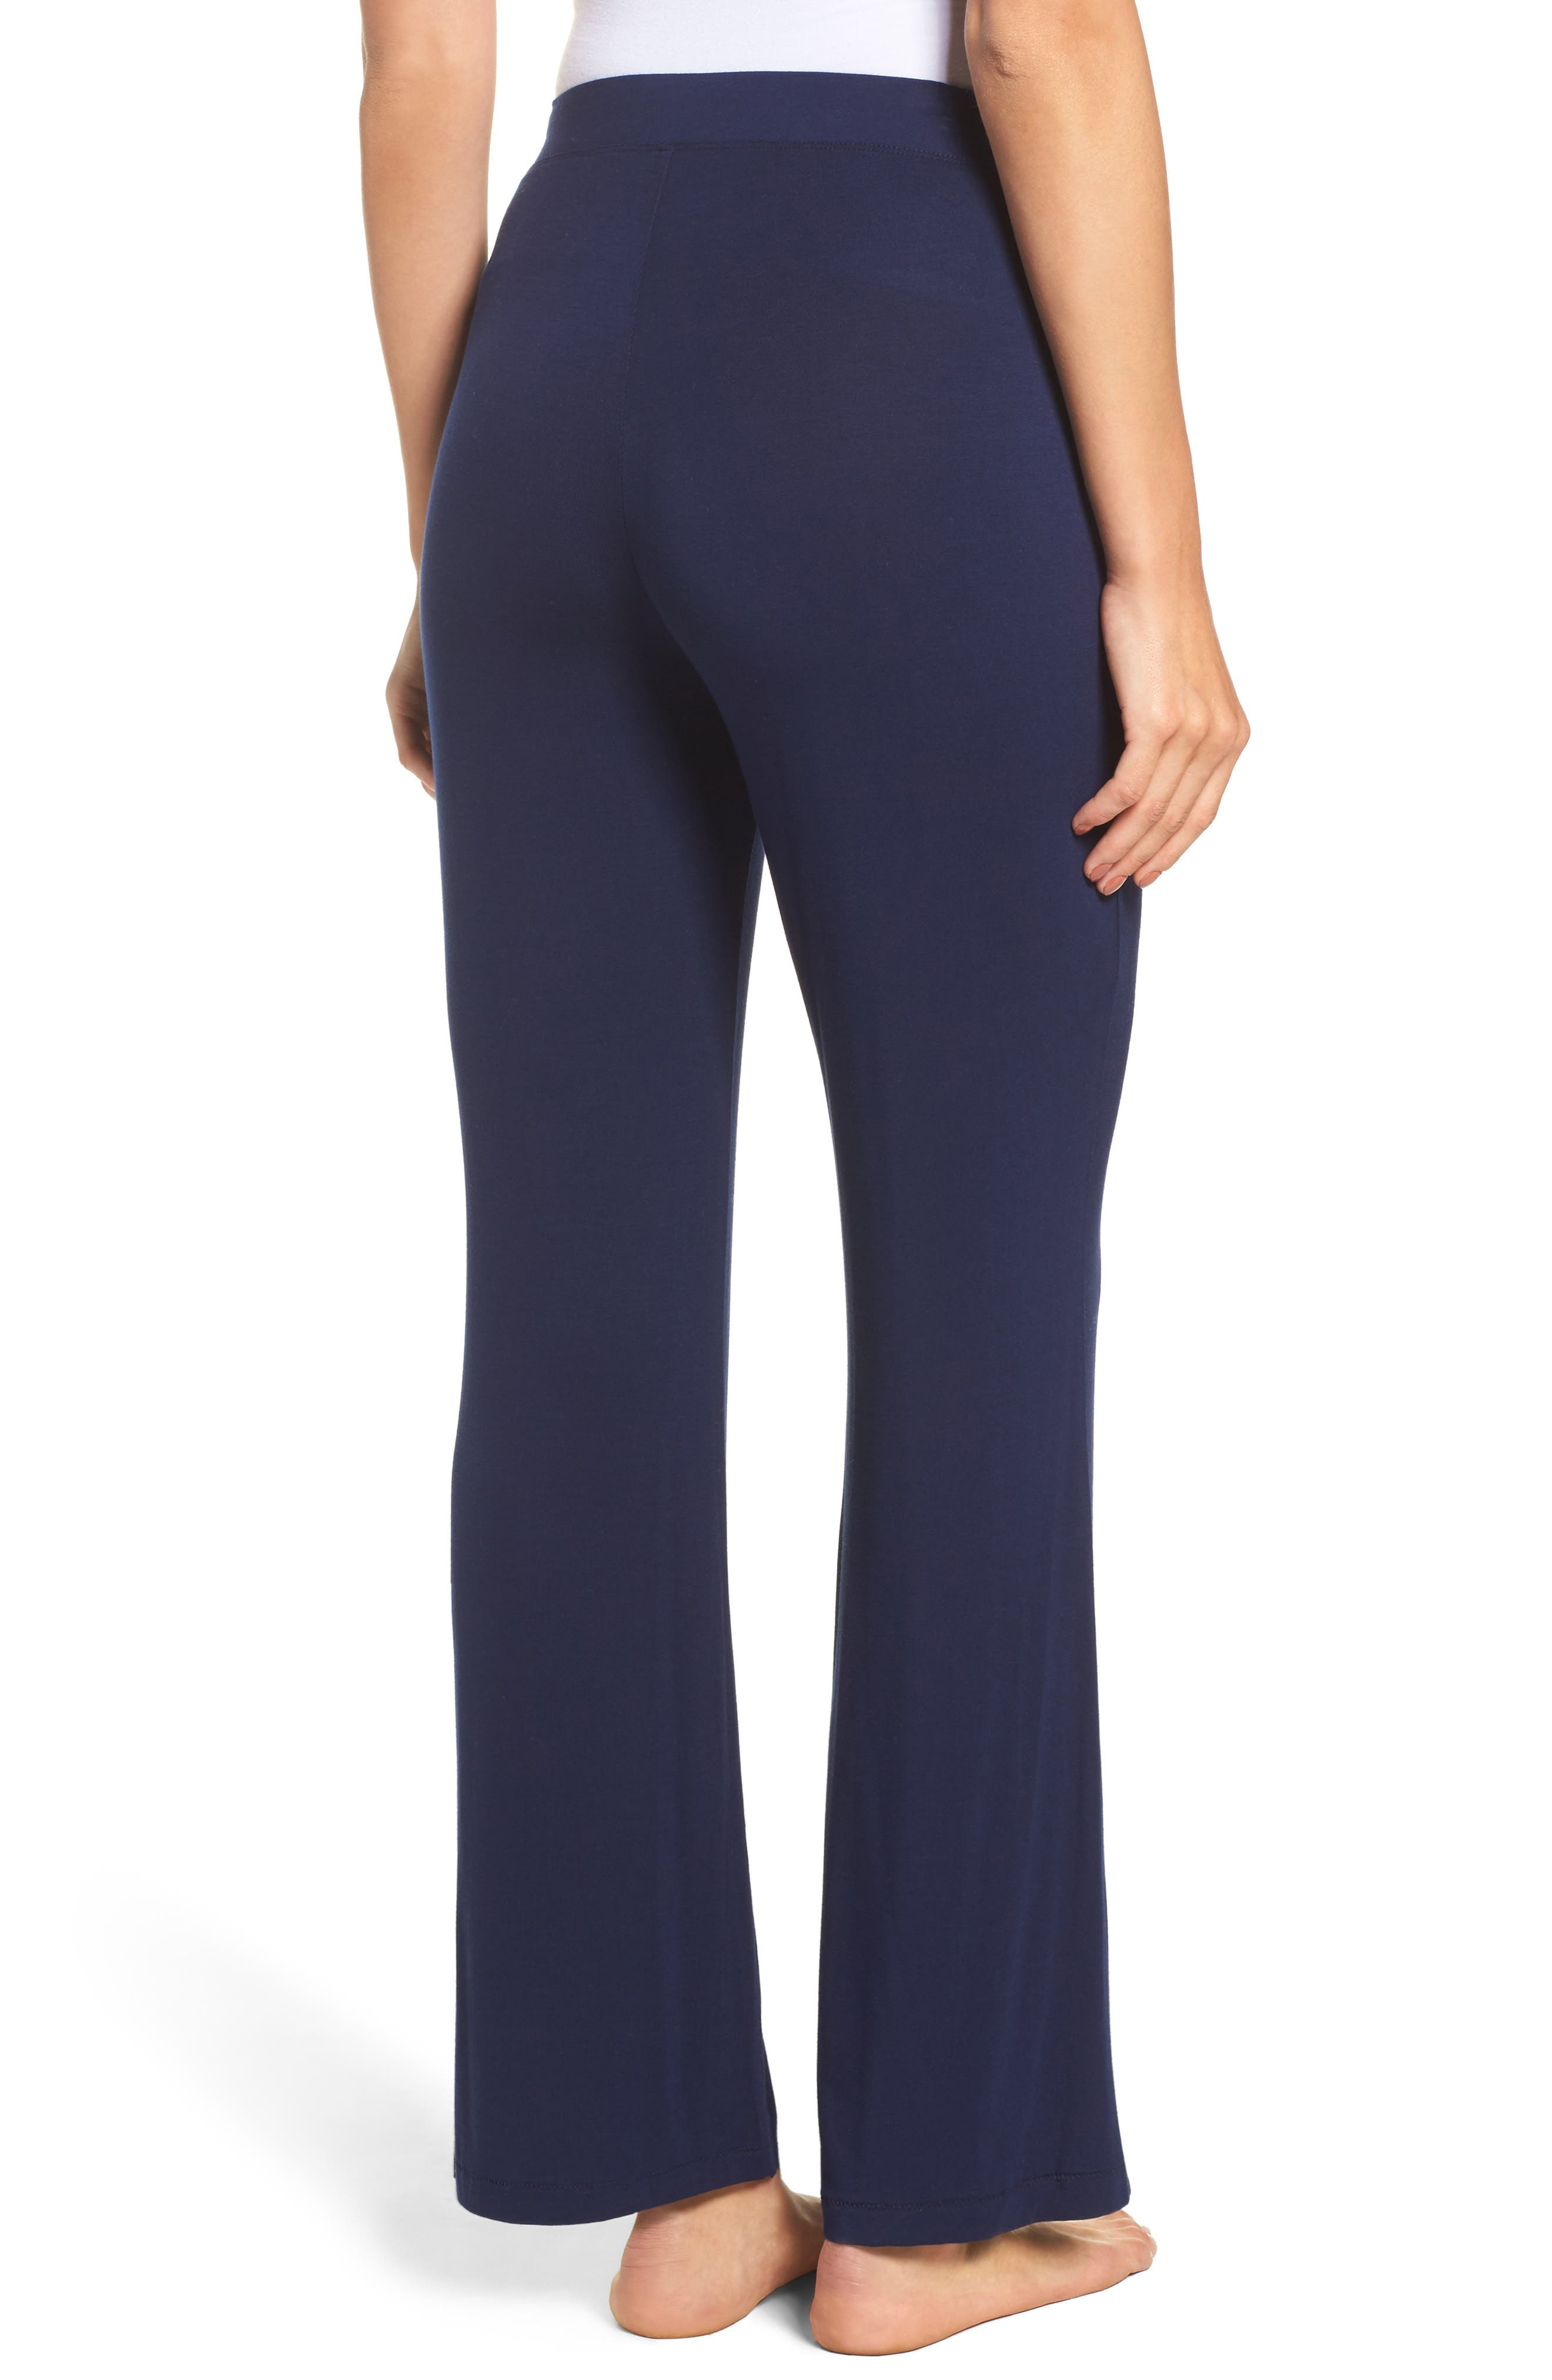 Polly Lounge Pants,                             Alternate thumbnail 2, color,                             400